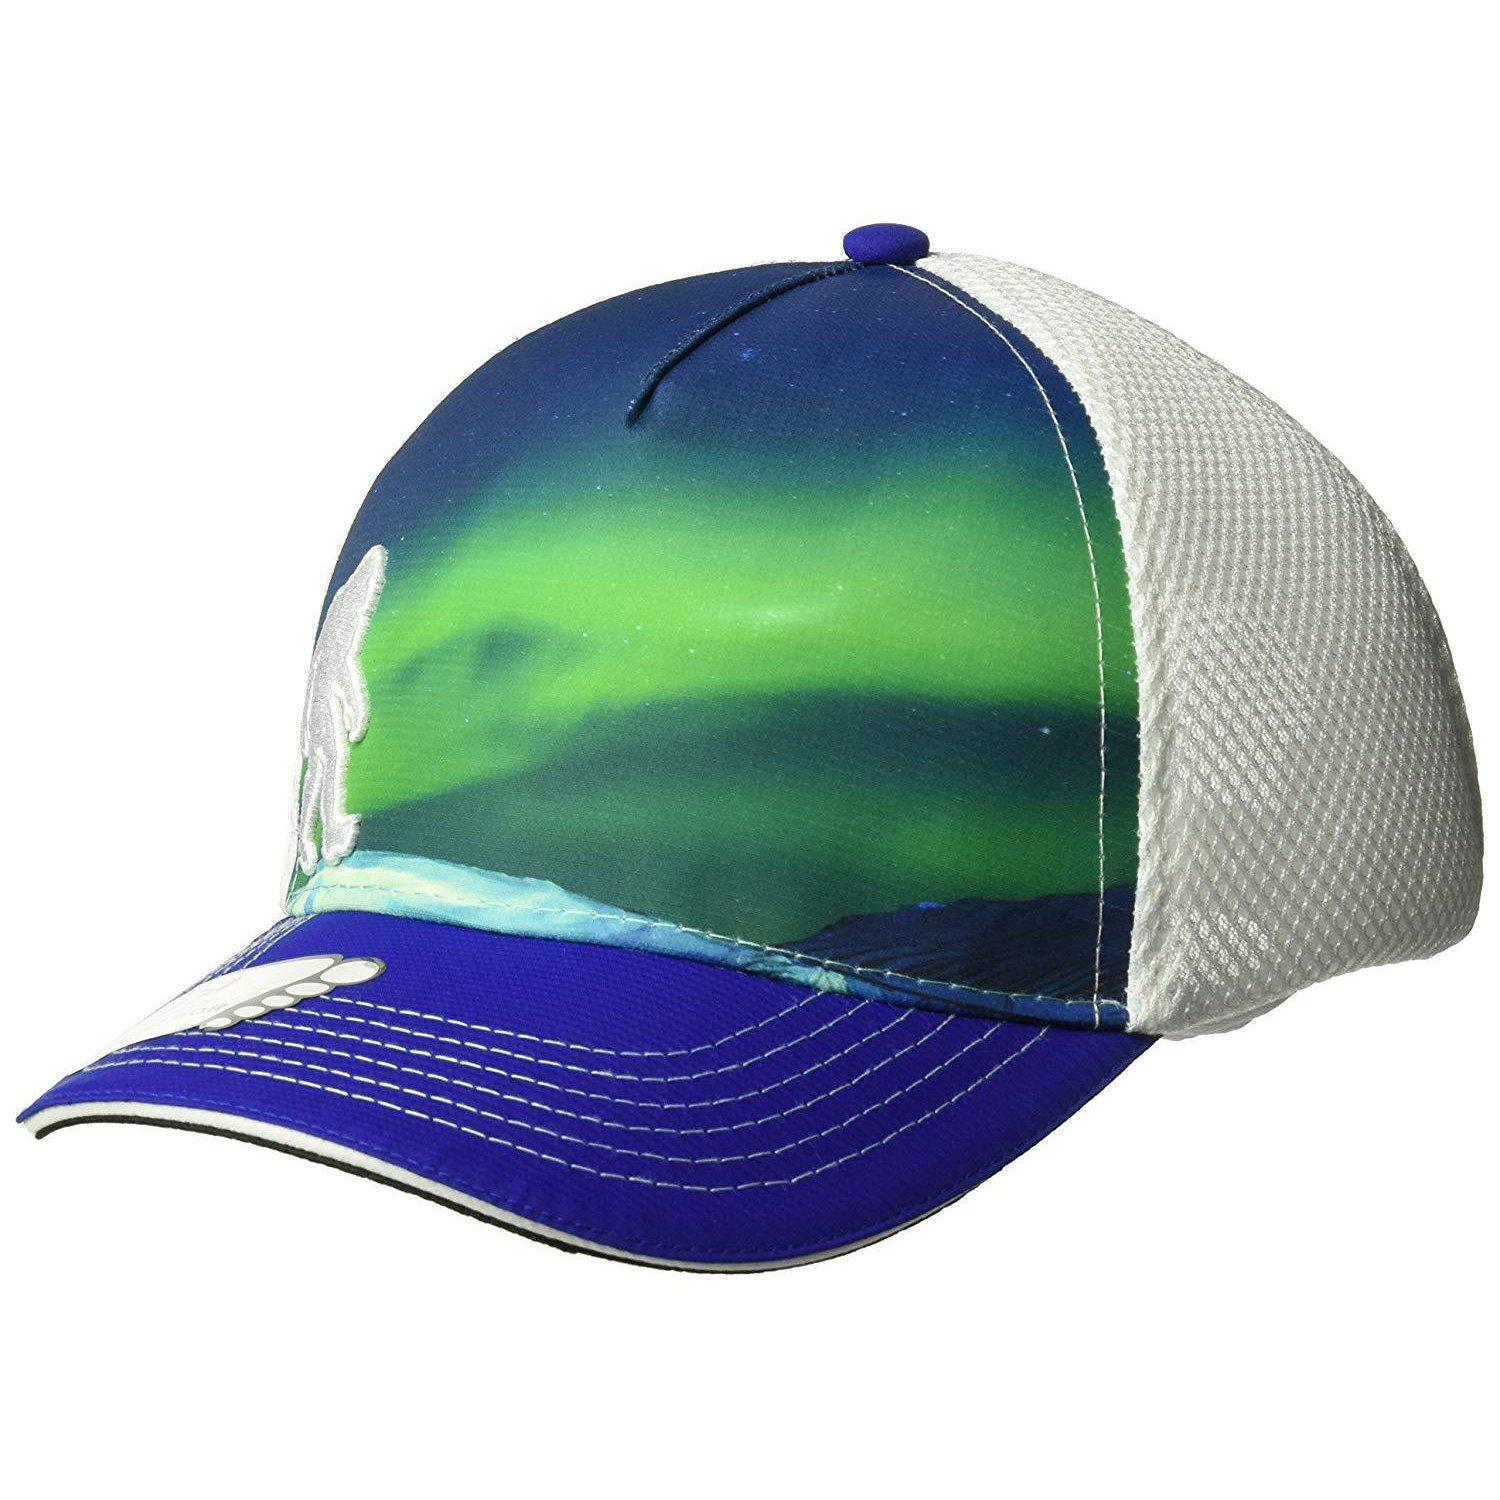 Headsweats Bigfoot Trucker Hat-Clothing Accessories-Amazon-Yeti Borealis-2 Foot Adventures